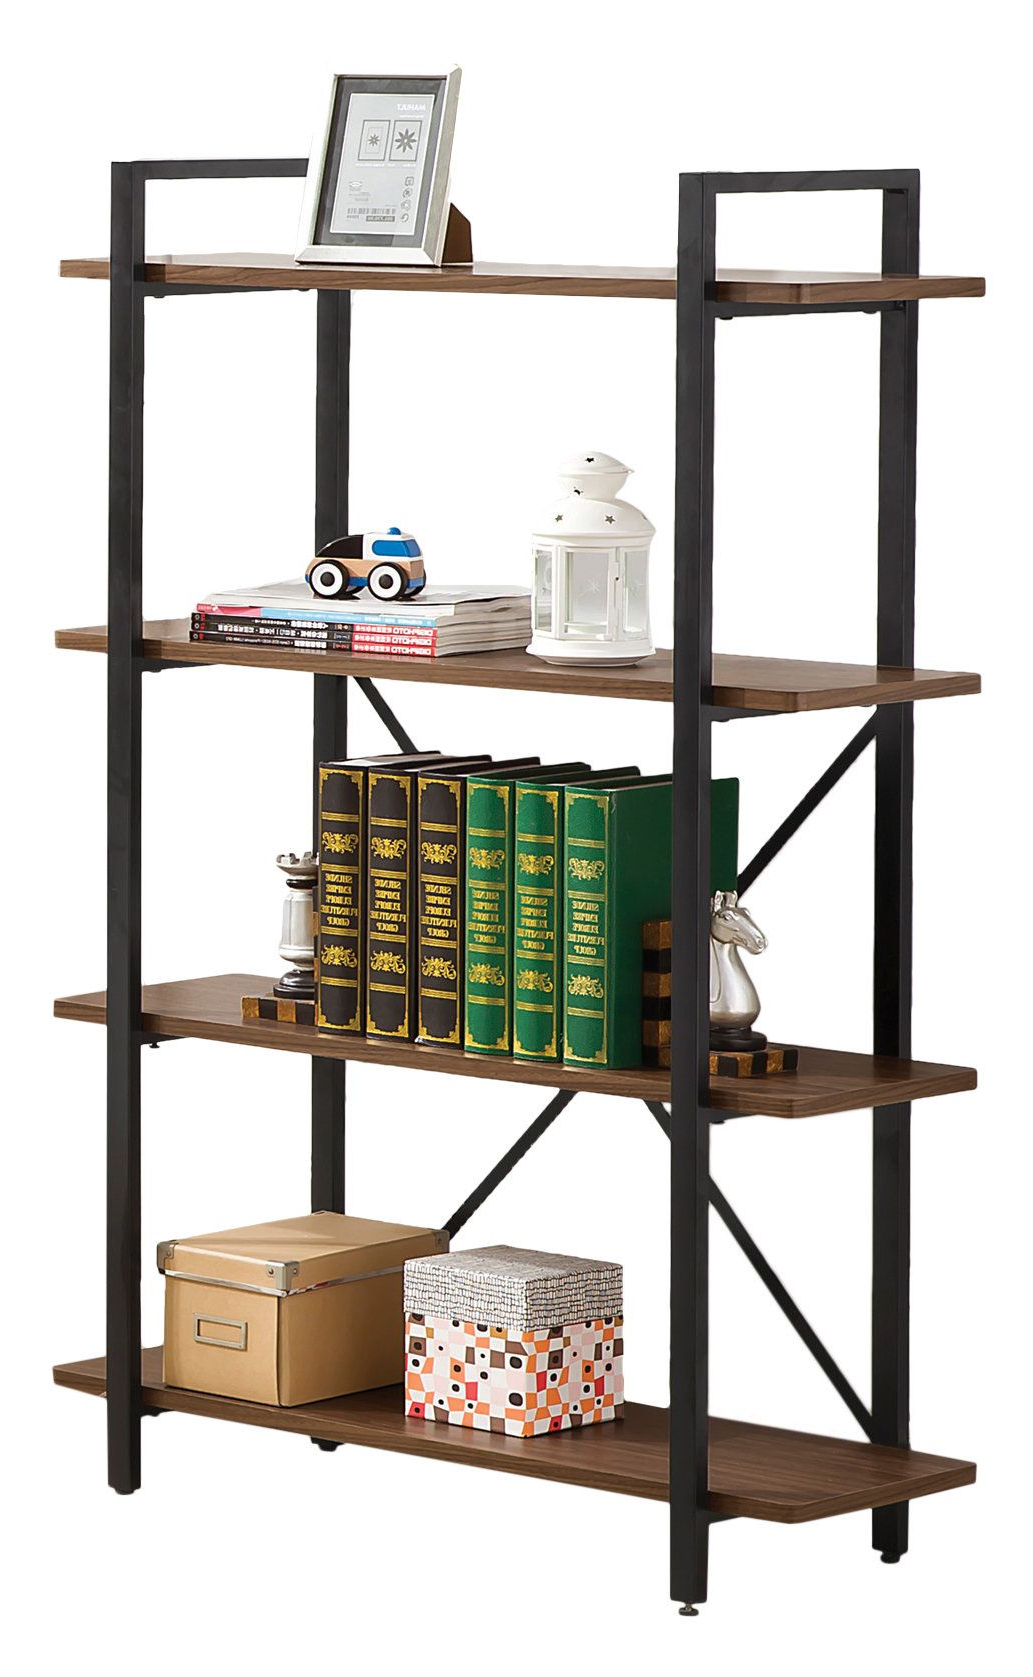 Etagere Bookcase, Black With Regard To Most Up To Date Earline Etagere Bookcases (View 14 of 20)